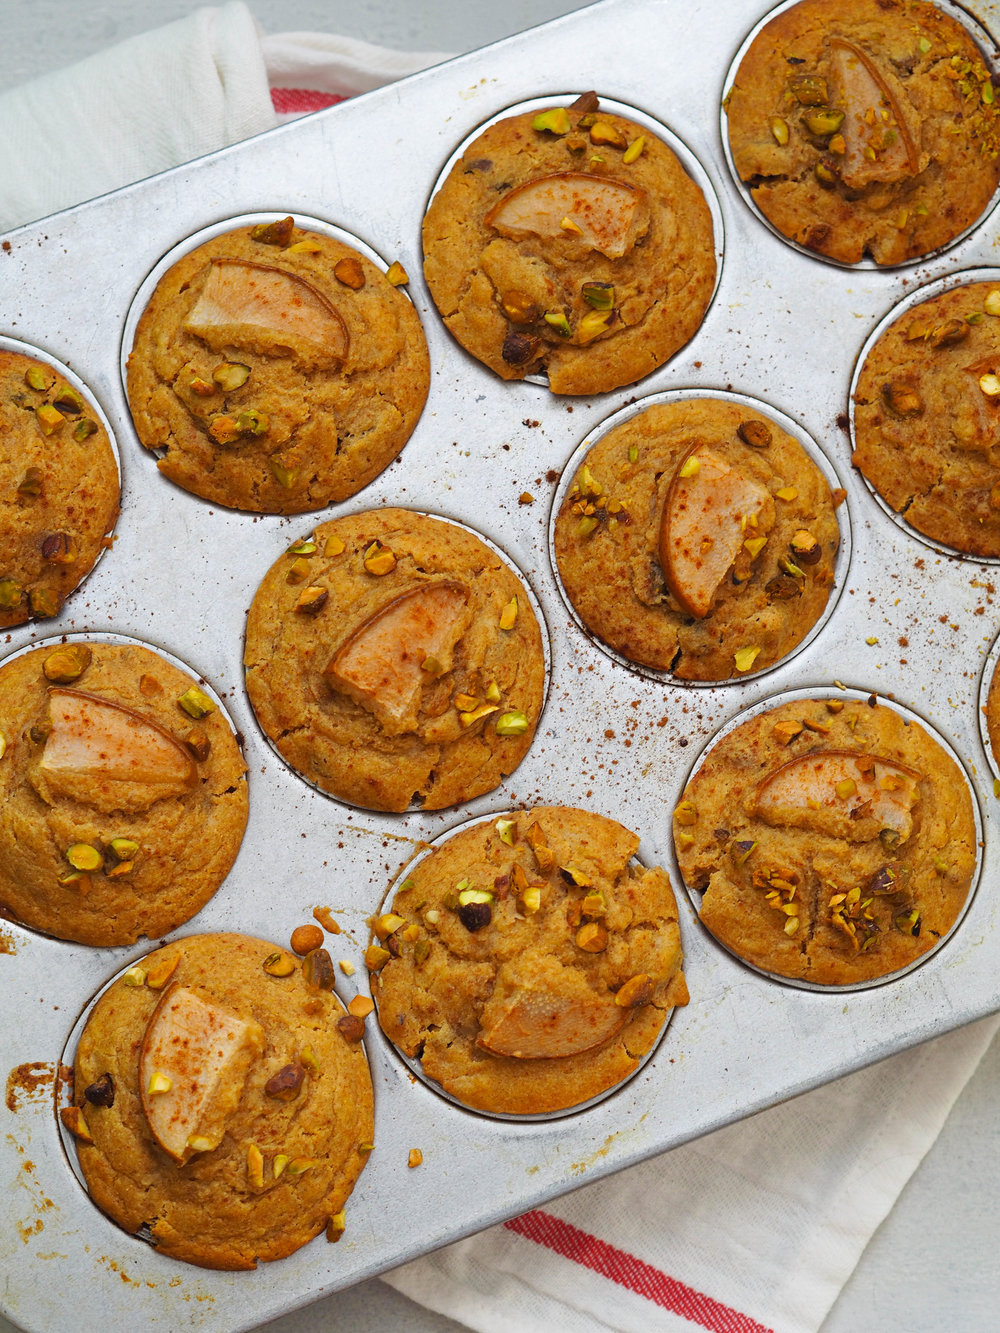 These honey pear pistachio muffins with quinoa flour are packed with fiber and protein so they'll actually satisfy! #baking #healthyrecipe #muffin #wholegrain #lowsugar